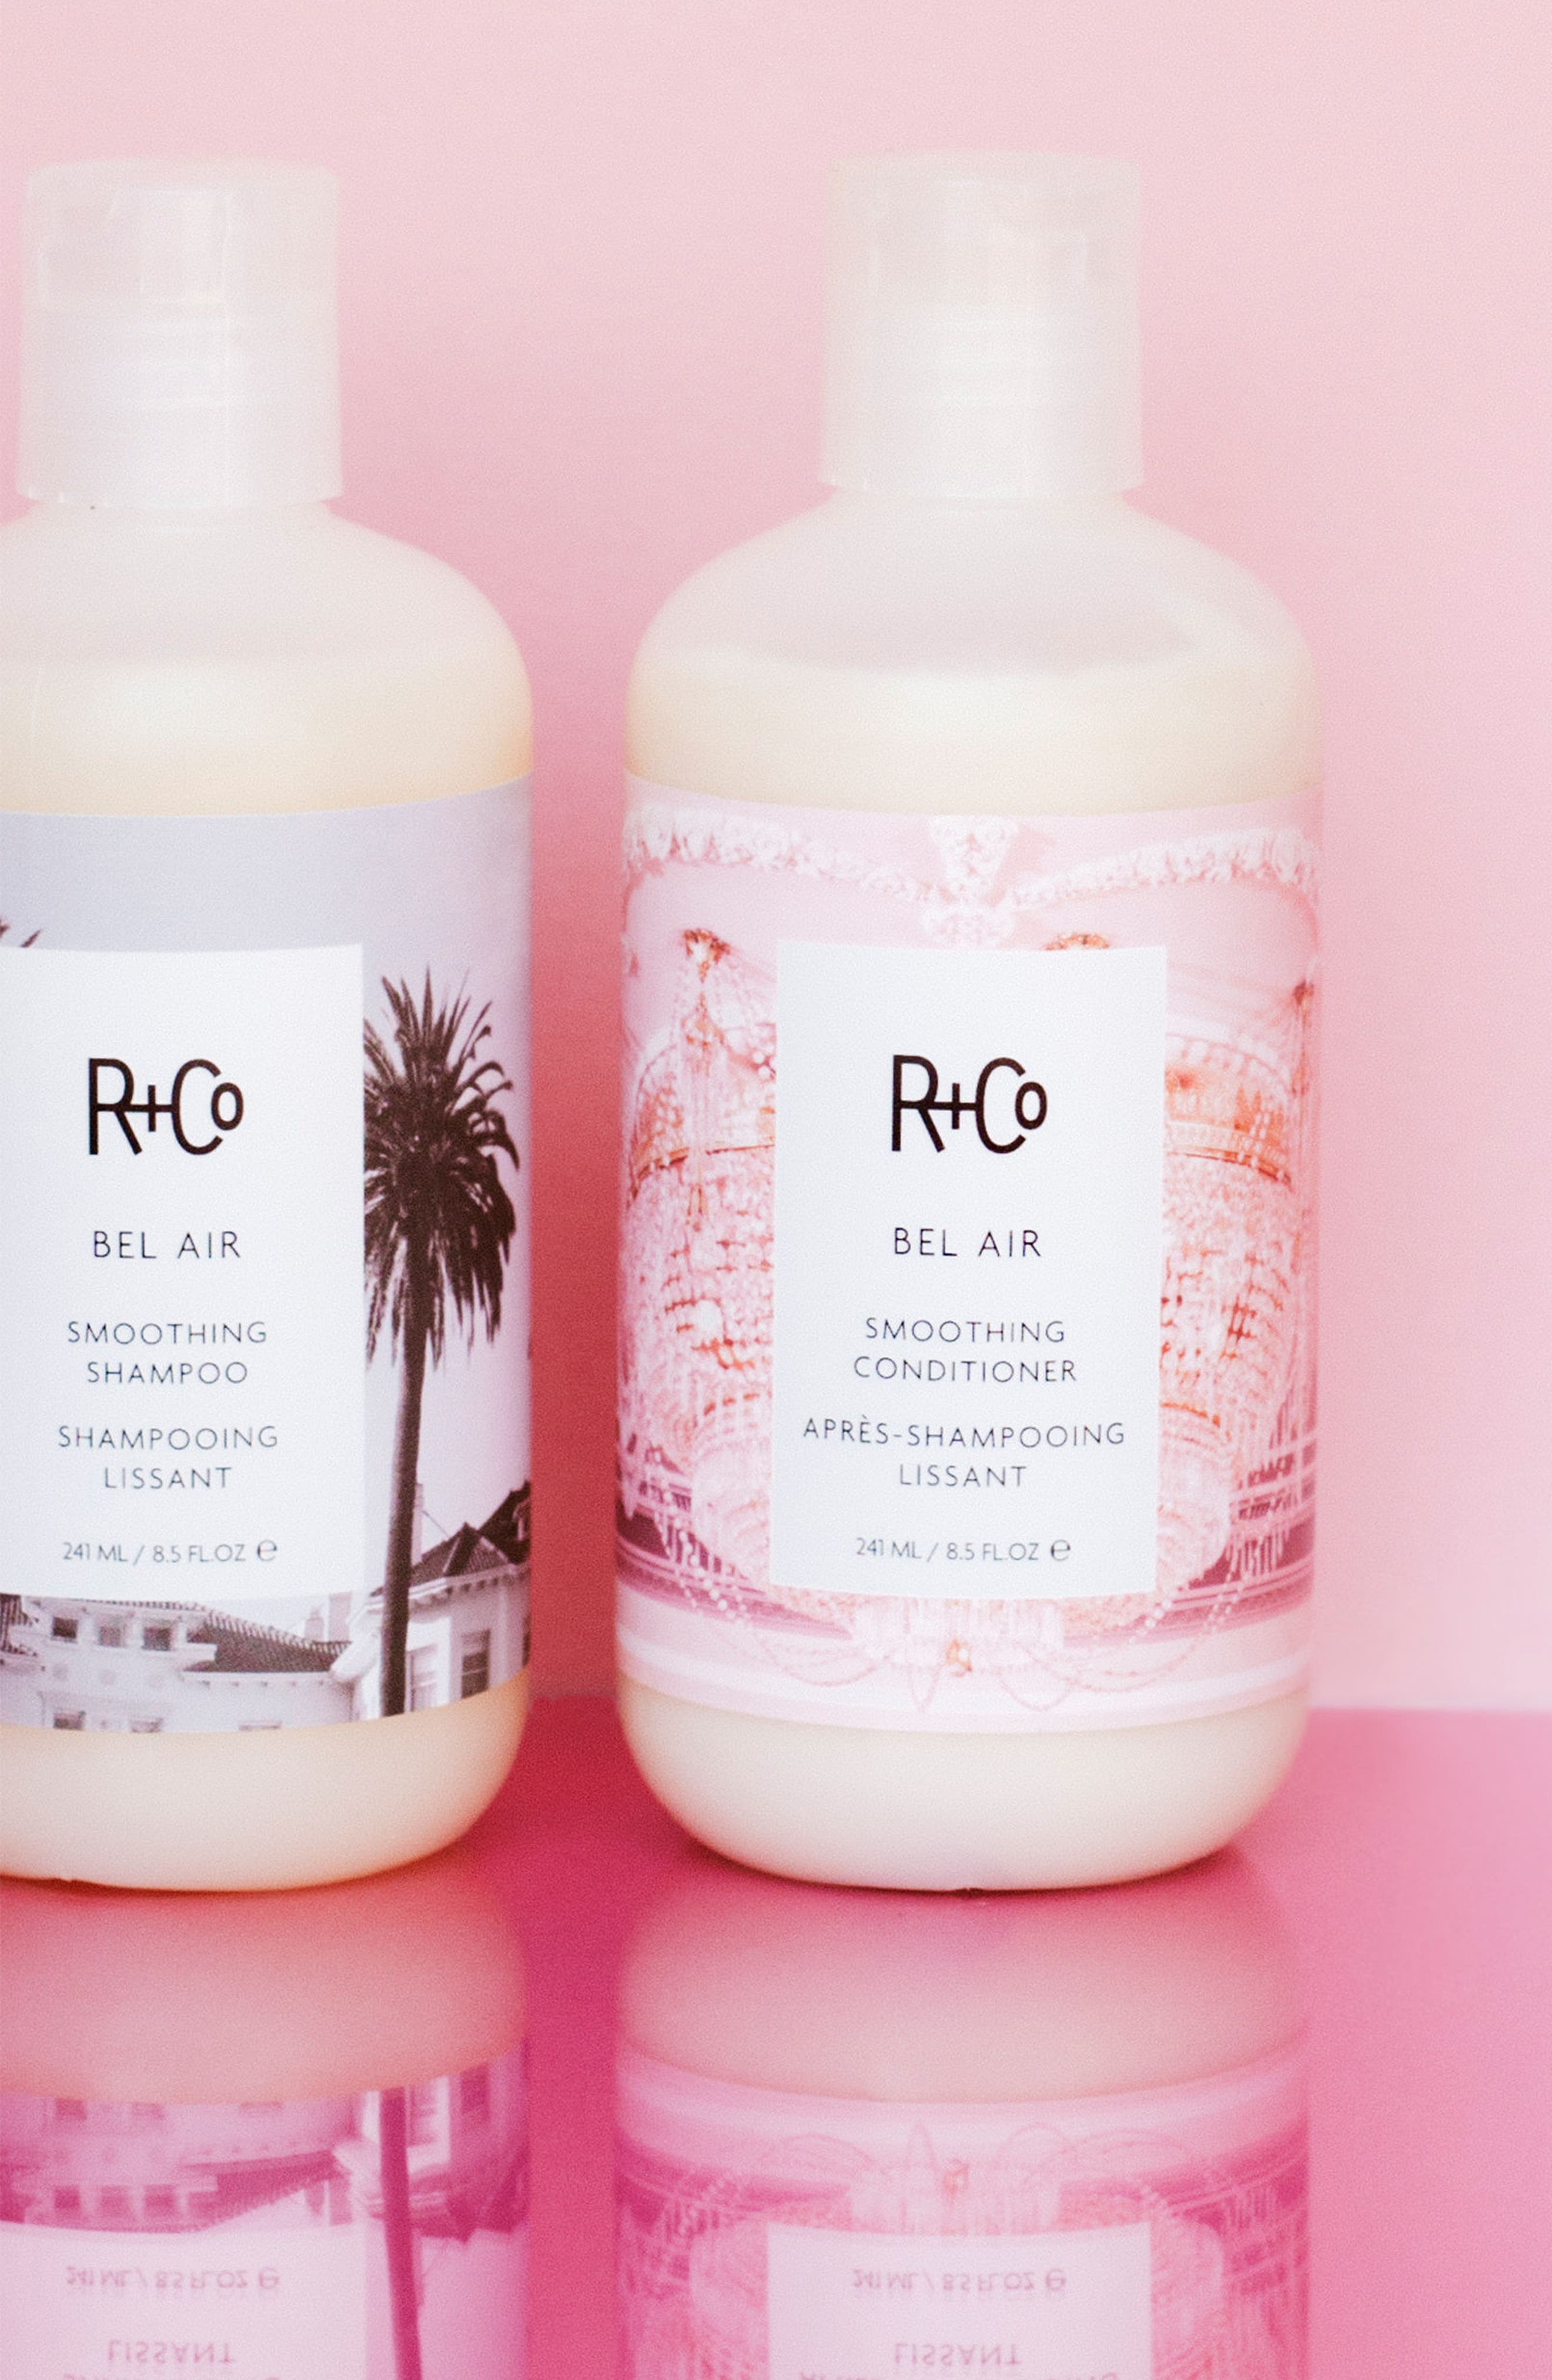 SPACE.NK.apothecary R+Co Bel Air Smoothing Shampoo,                             Alternate thumbnail 5, color,                             000